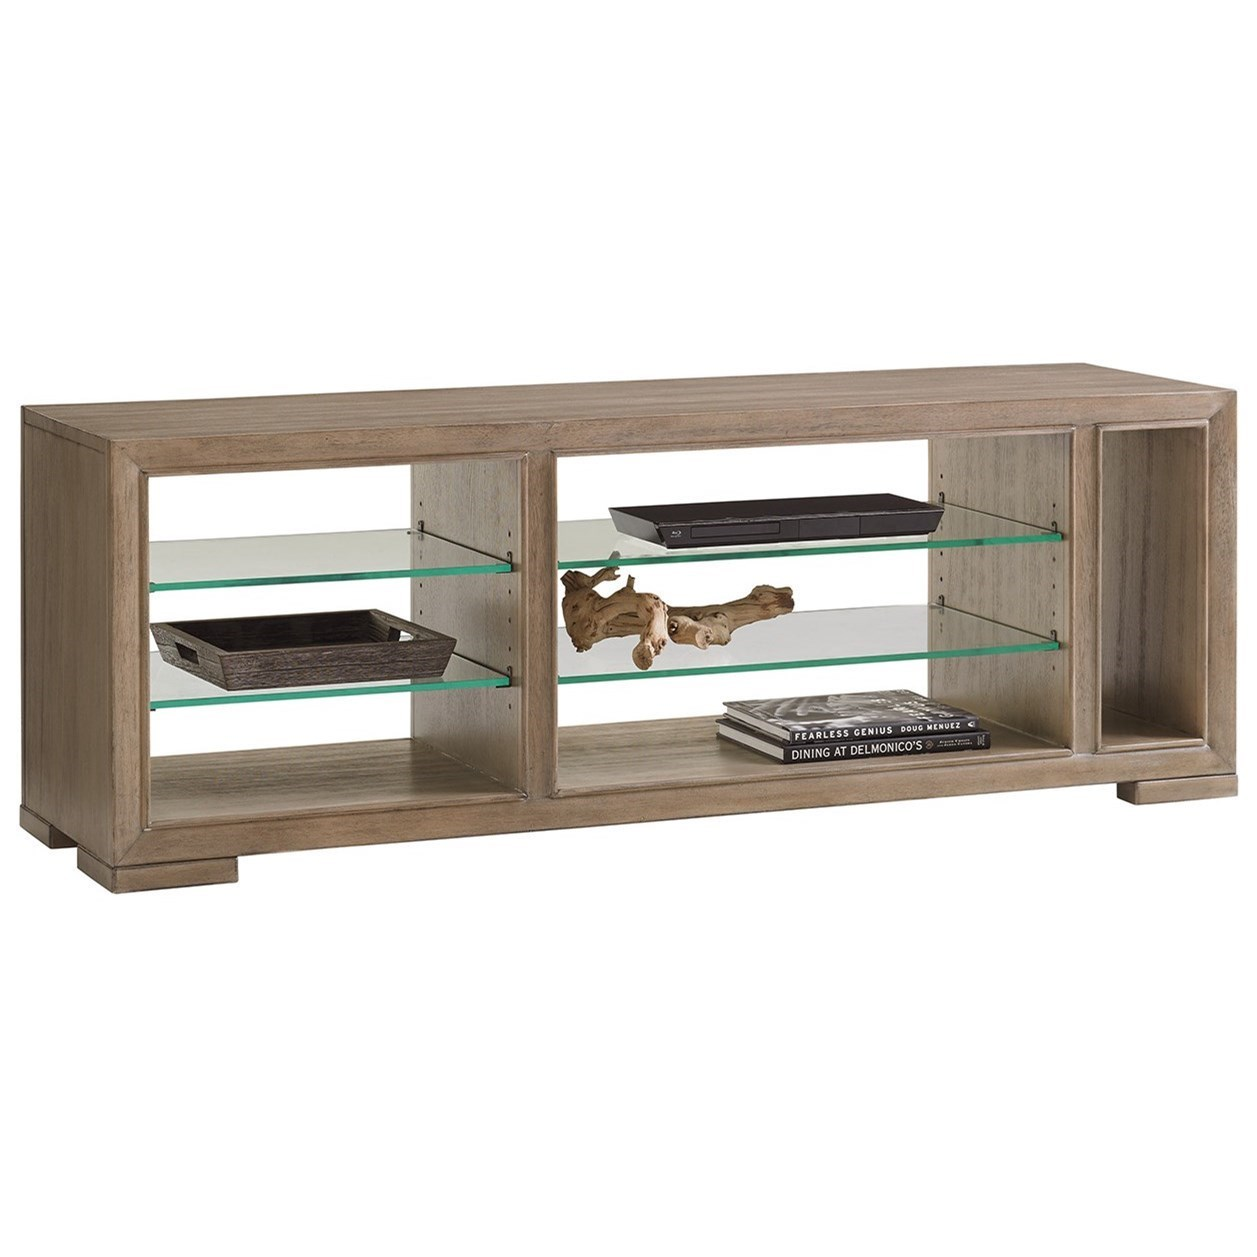 Spotlight Media Console with Adjustable Glass Shelves